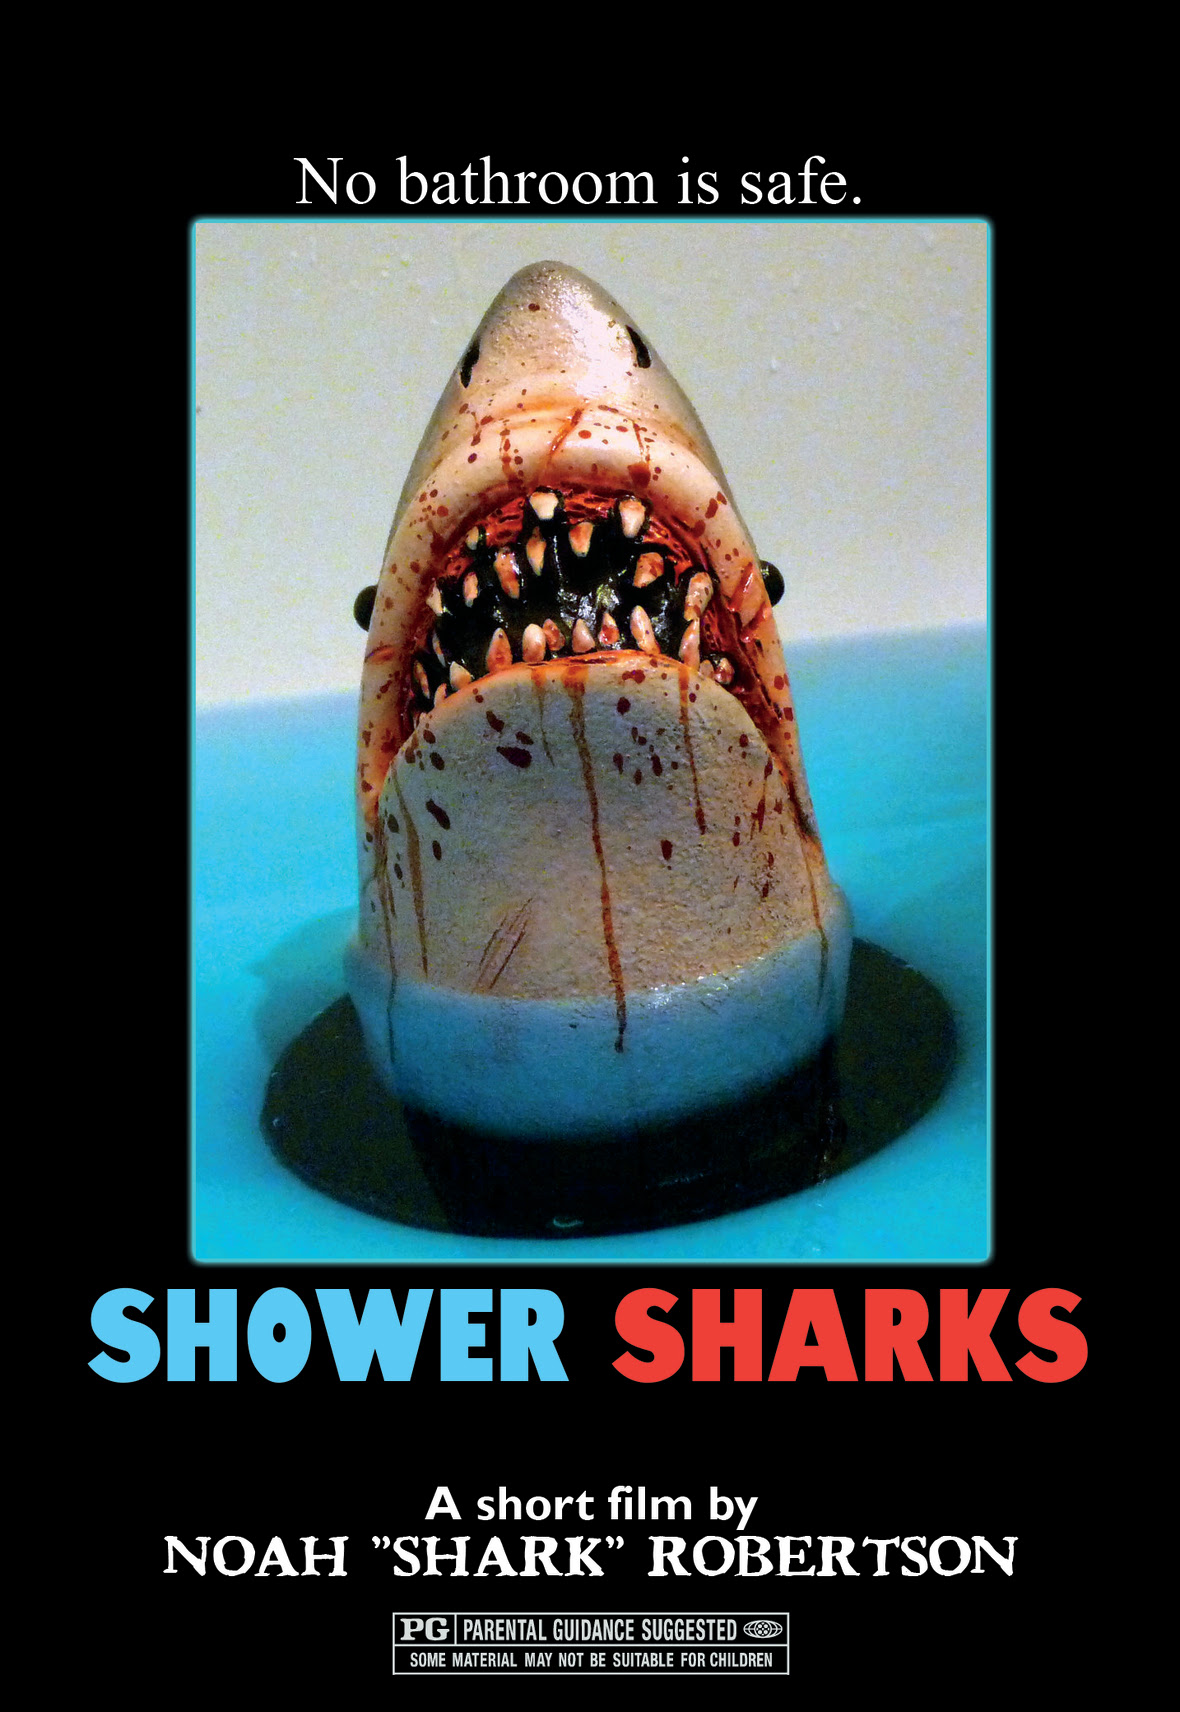 showersharksposter1